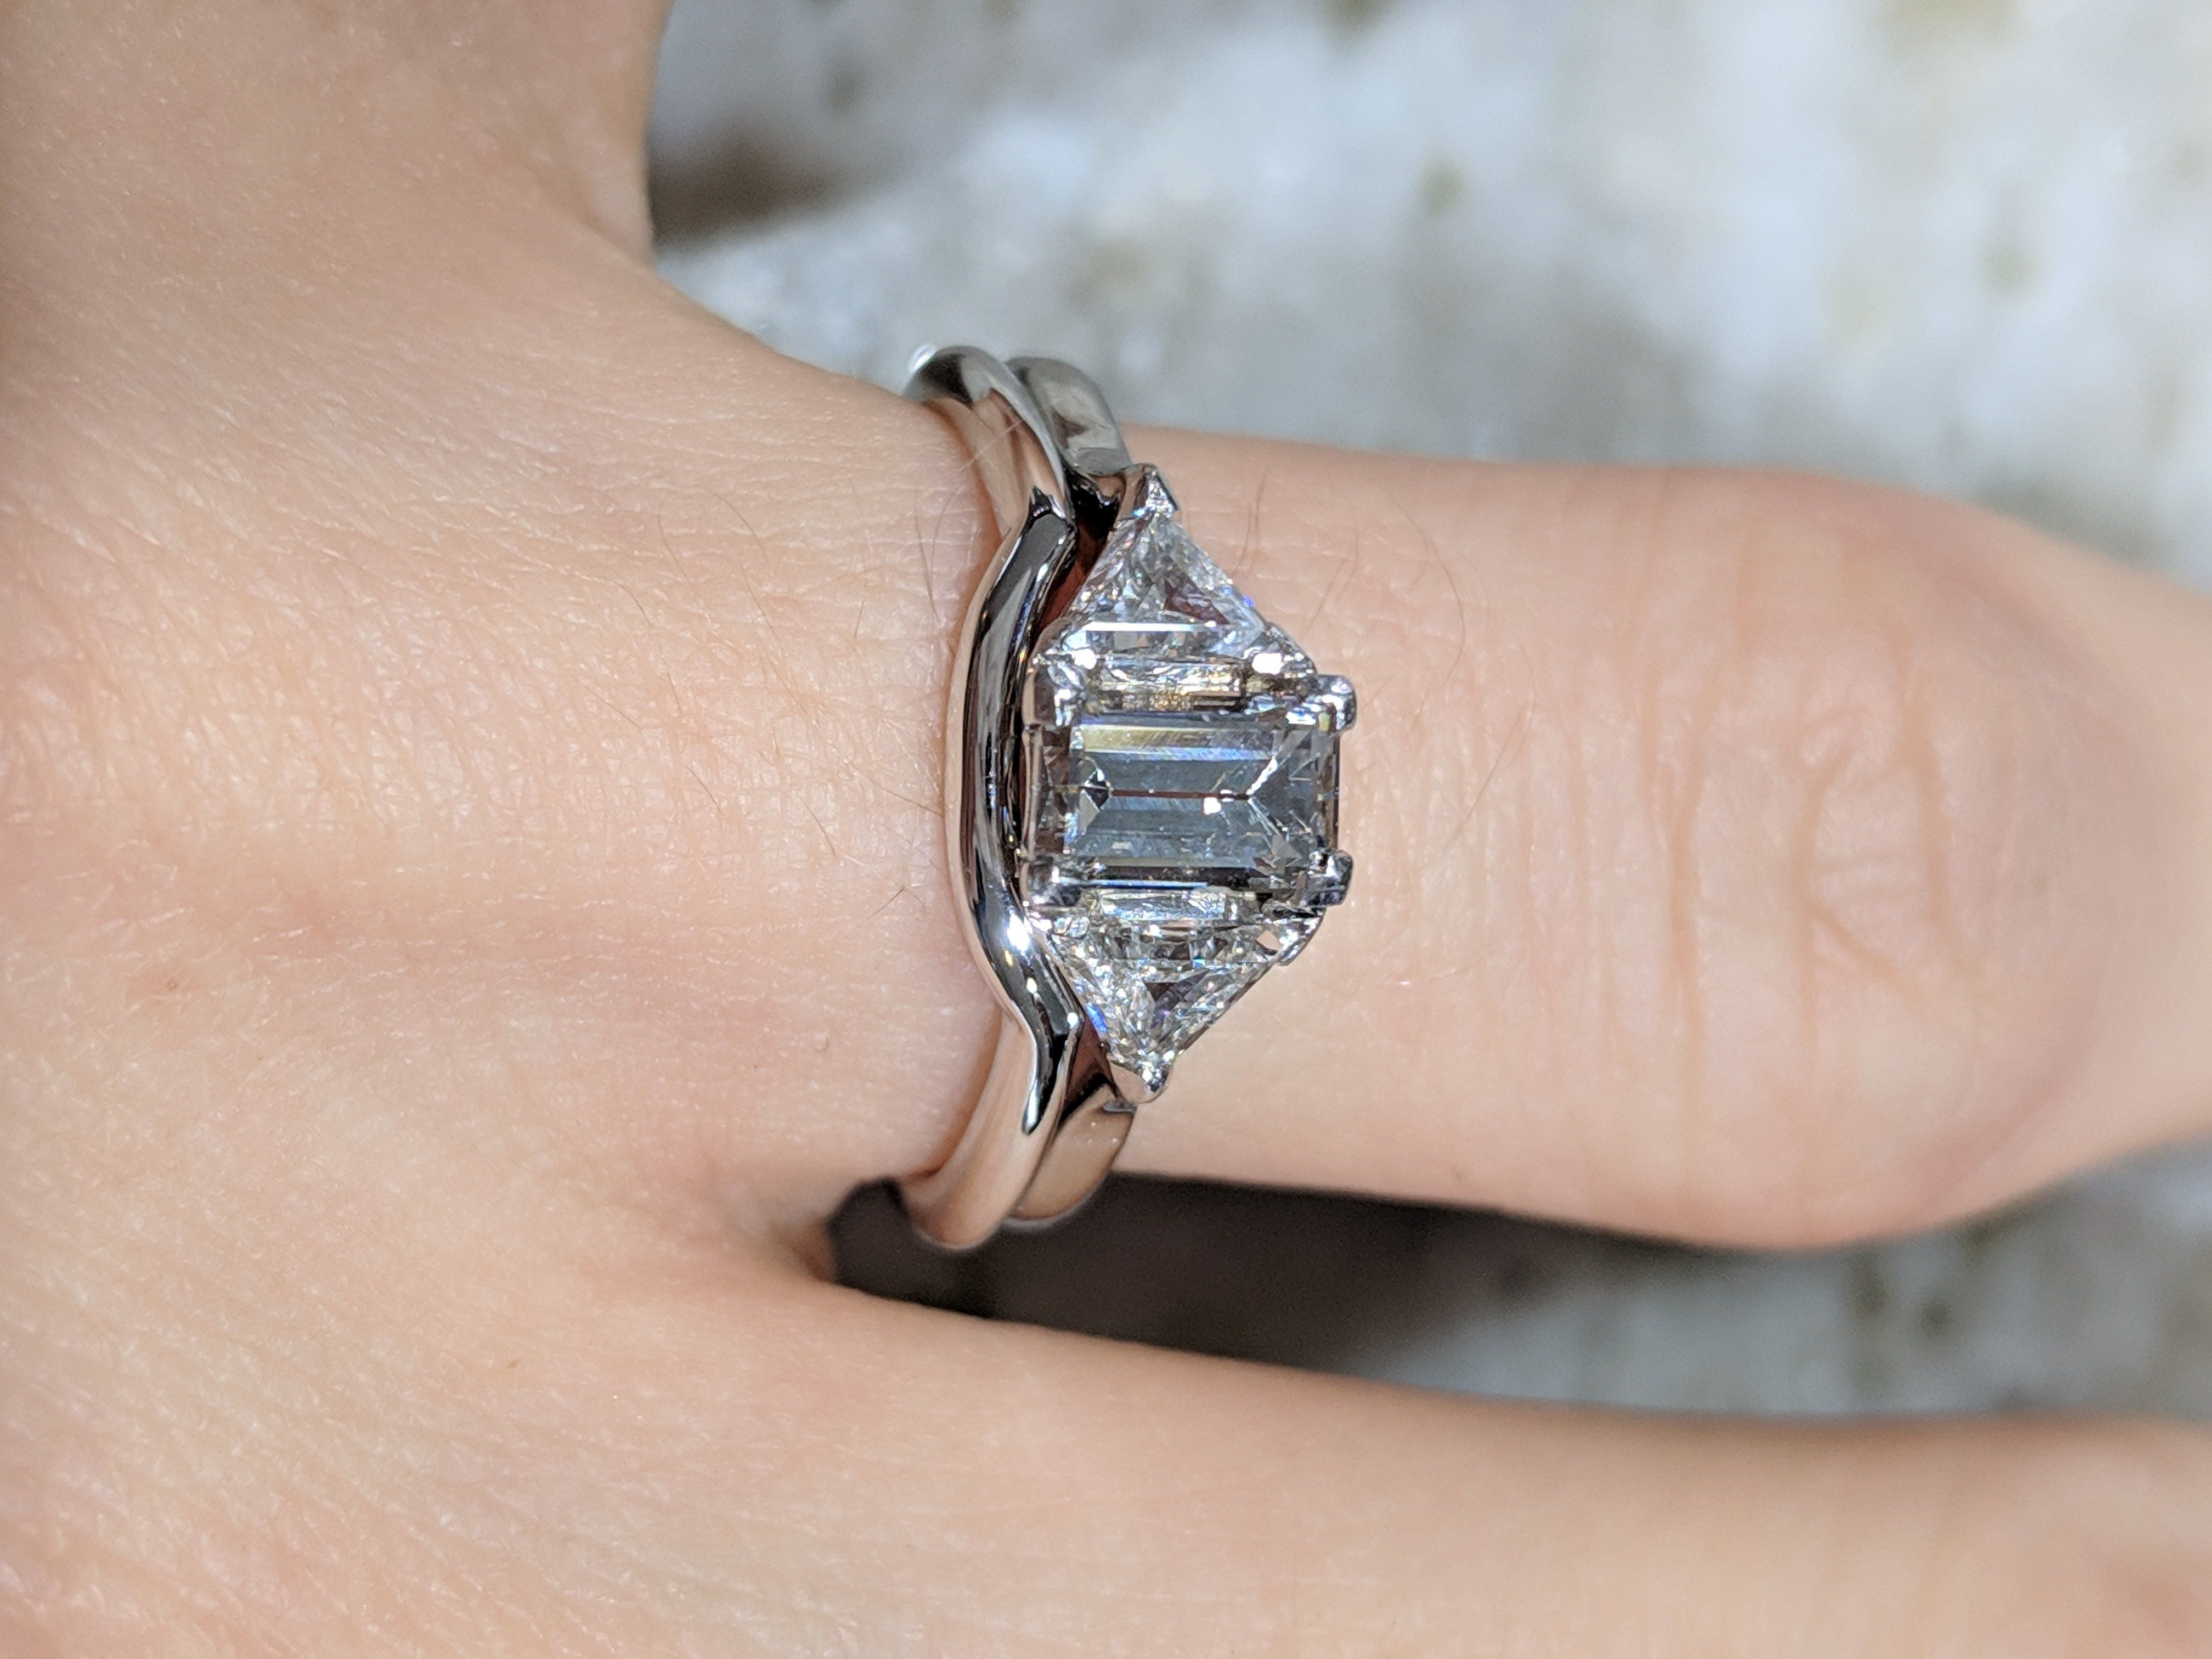 How To Keep Rings From Turning On Wedding Day Wedding